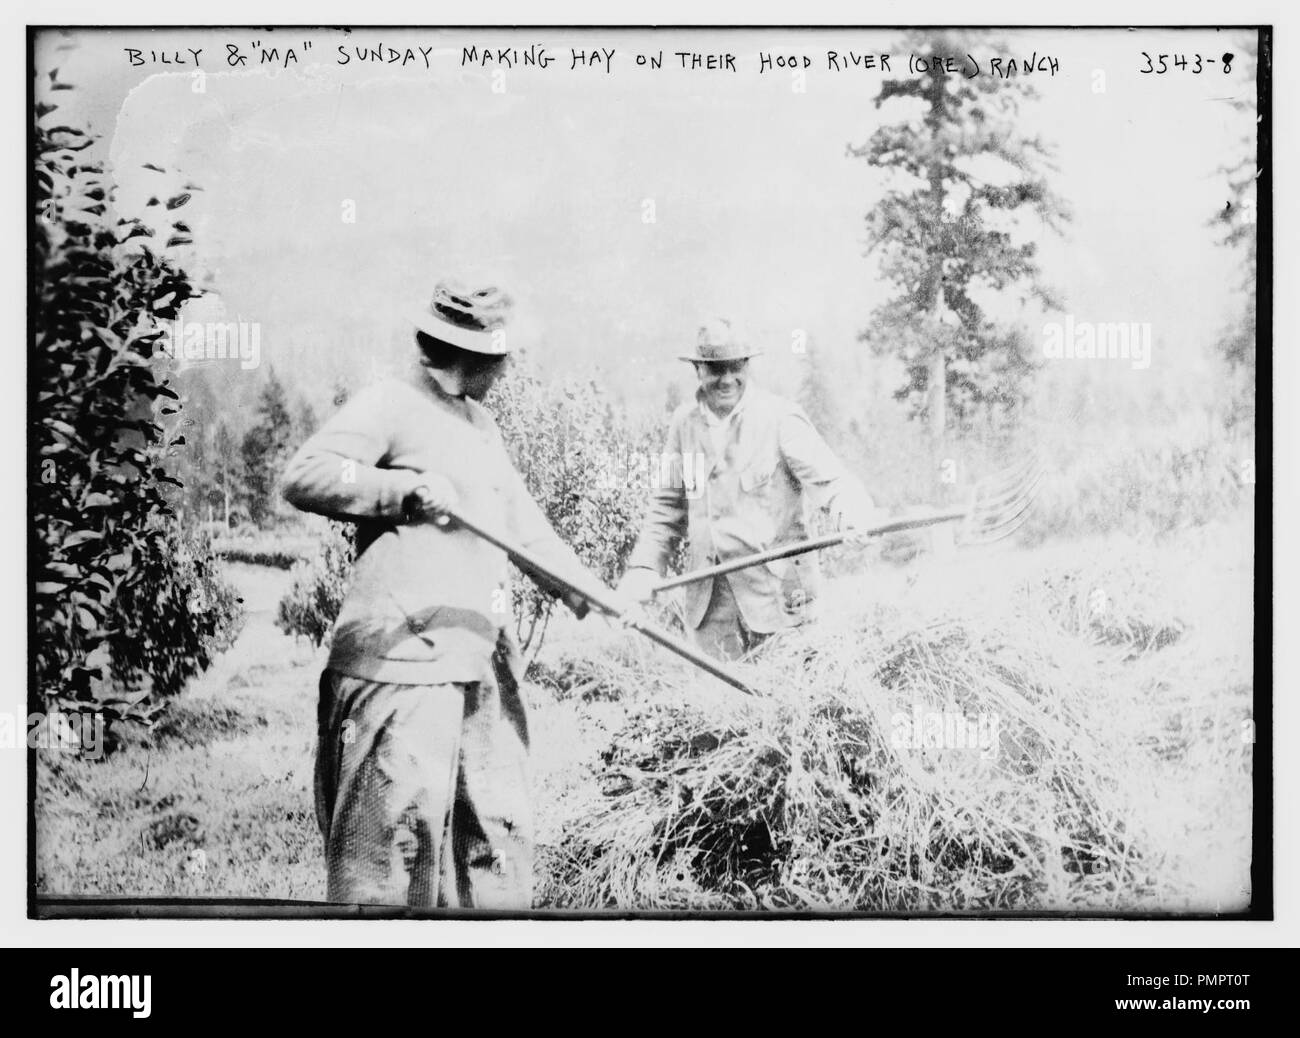 Billy and 'Ma' Sunday making hay on their Hood River (Ore.) ranch - Stock Image